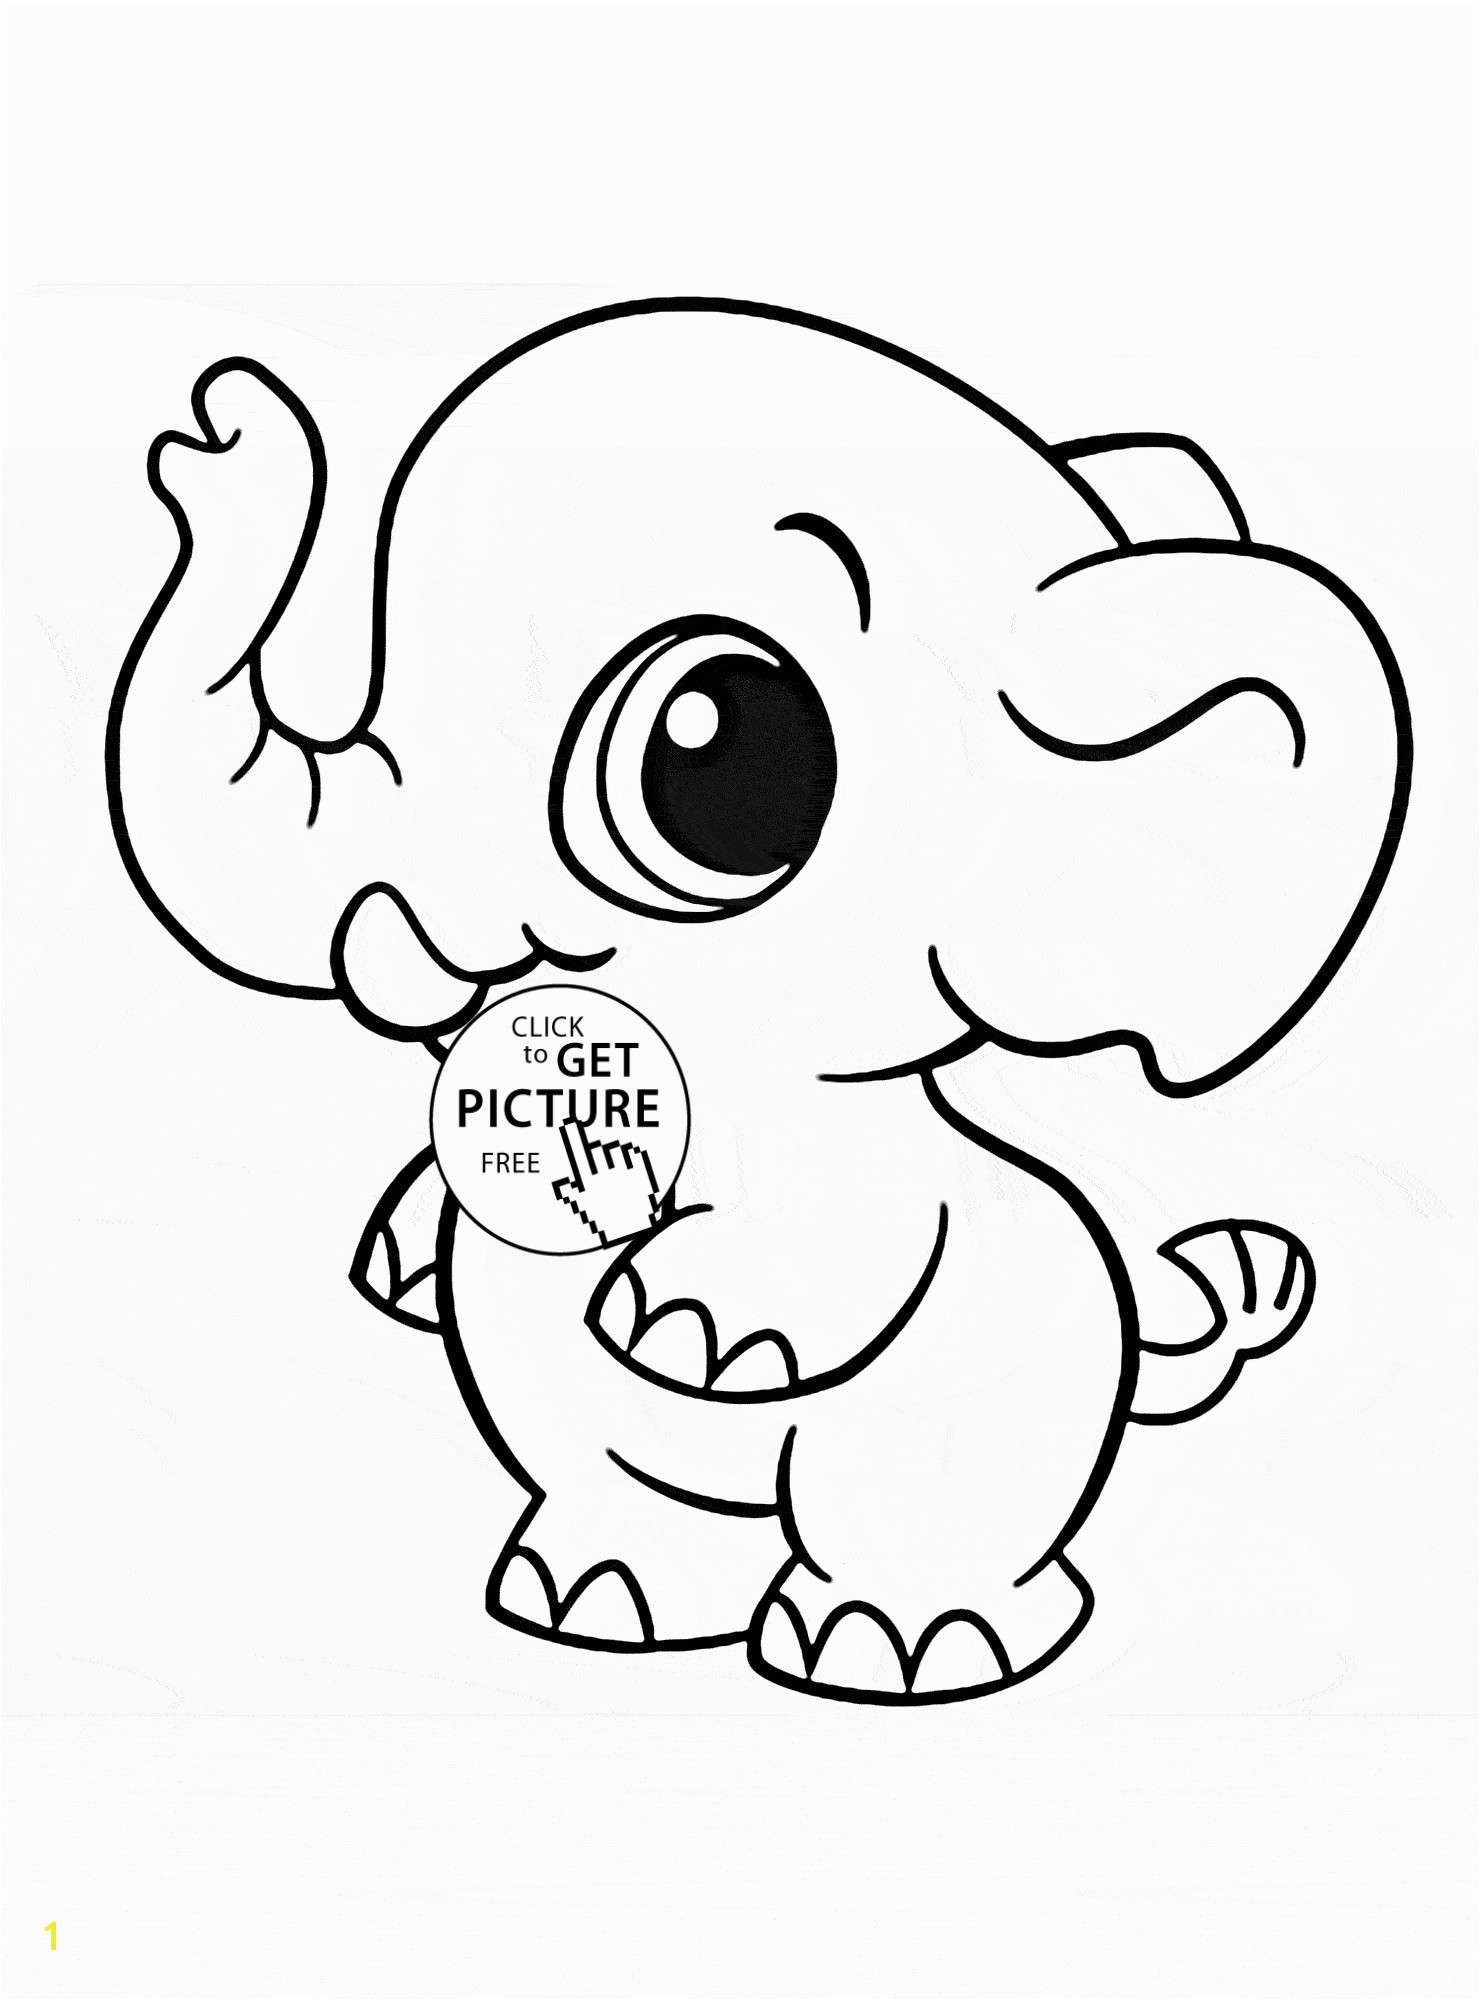 Elephant Coloring Pages for Kids Elephant Coloring Pages Unique Color Page New Children Colouring 0d